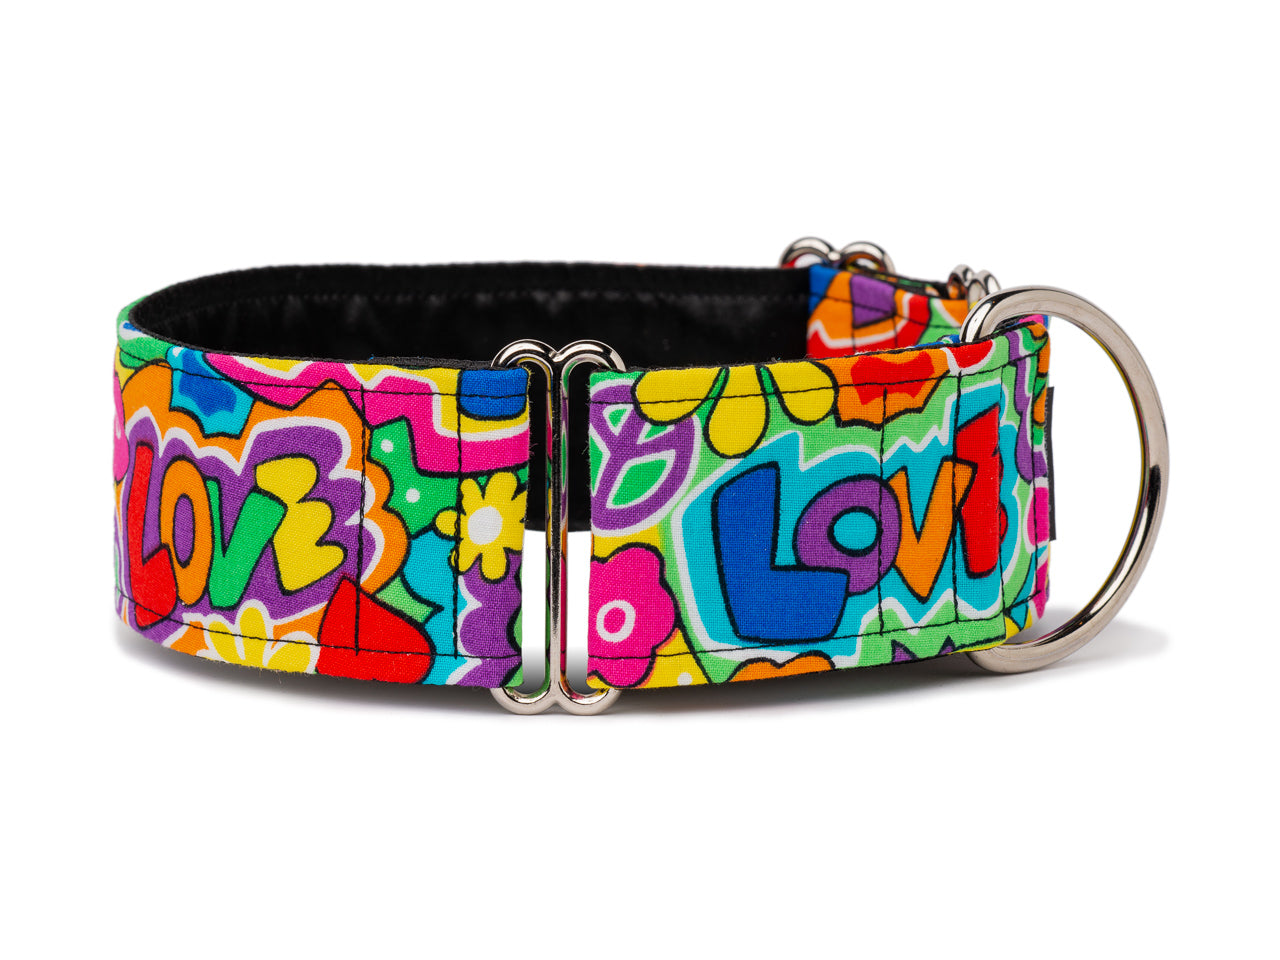 Your favorite four-legger will feel fun and fabulous in this colorful, retro love collar. Groovy baby, yeah!